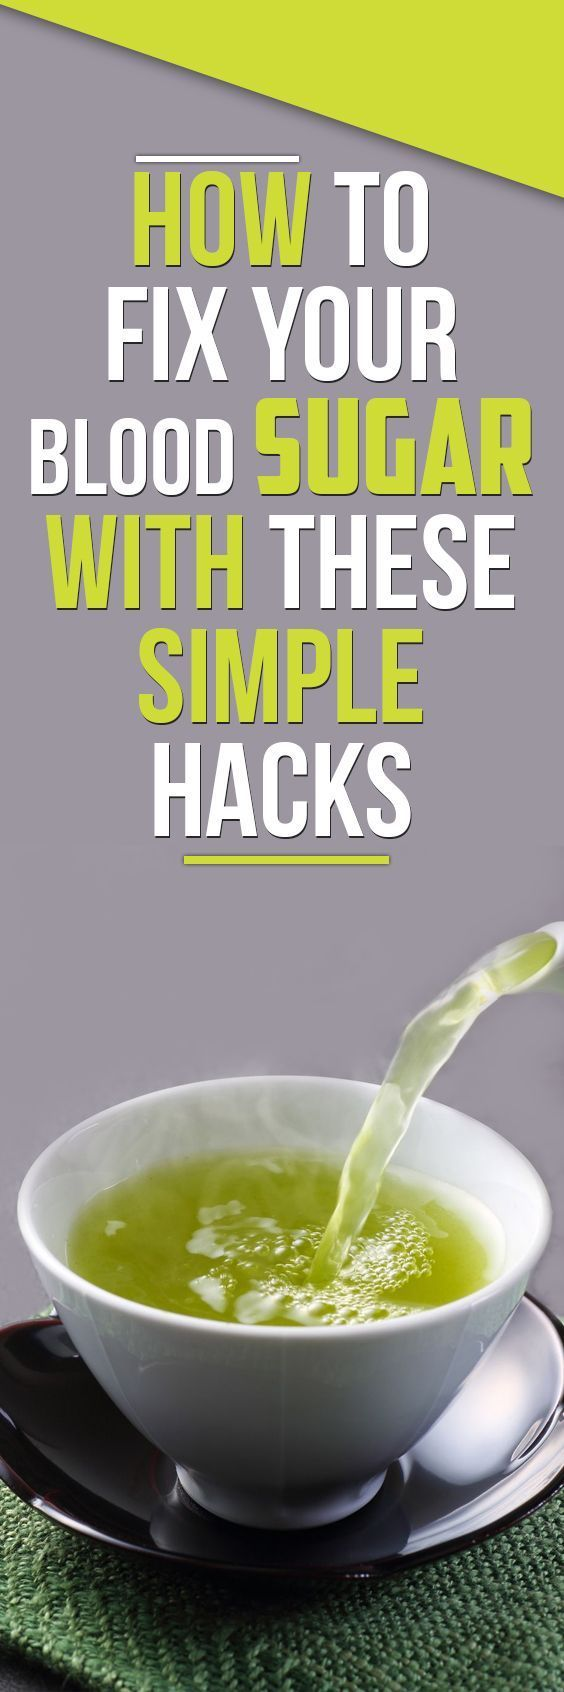 Simple Hacks to FIX Your BLOOD SUGAR